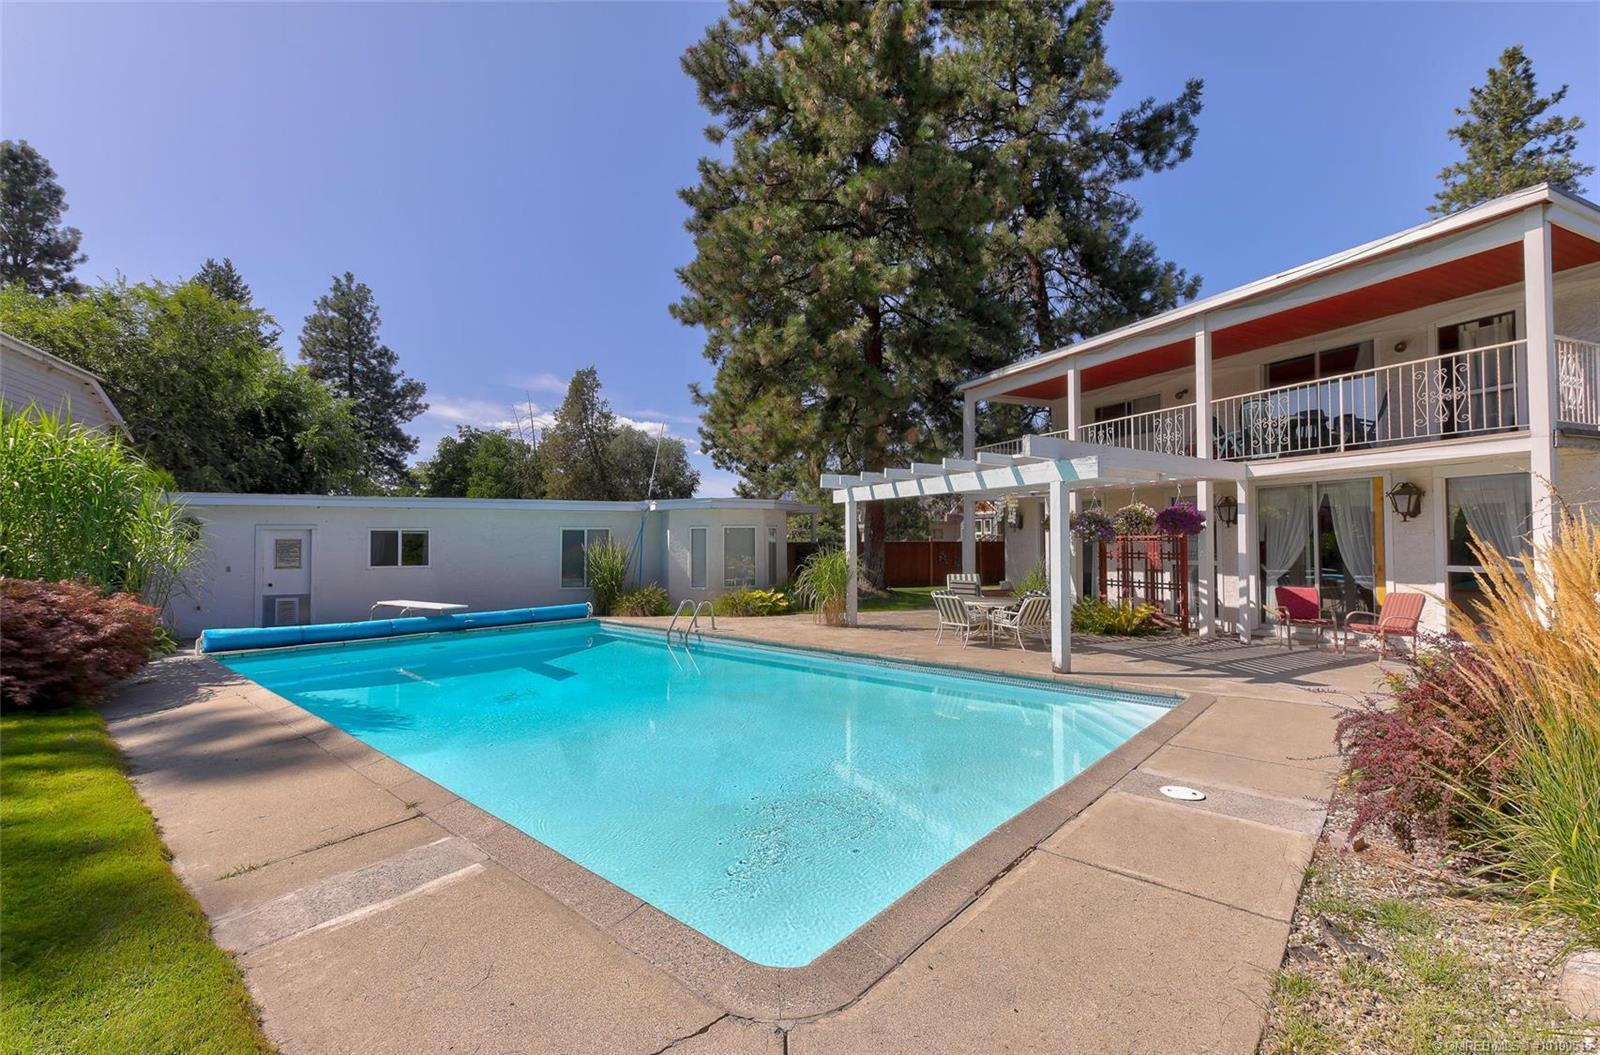 Removed: 1475 Collison Road, Kelowna, BC - Removed on 2019-10-16 06:24:10